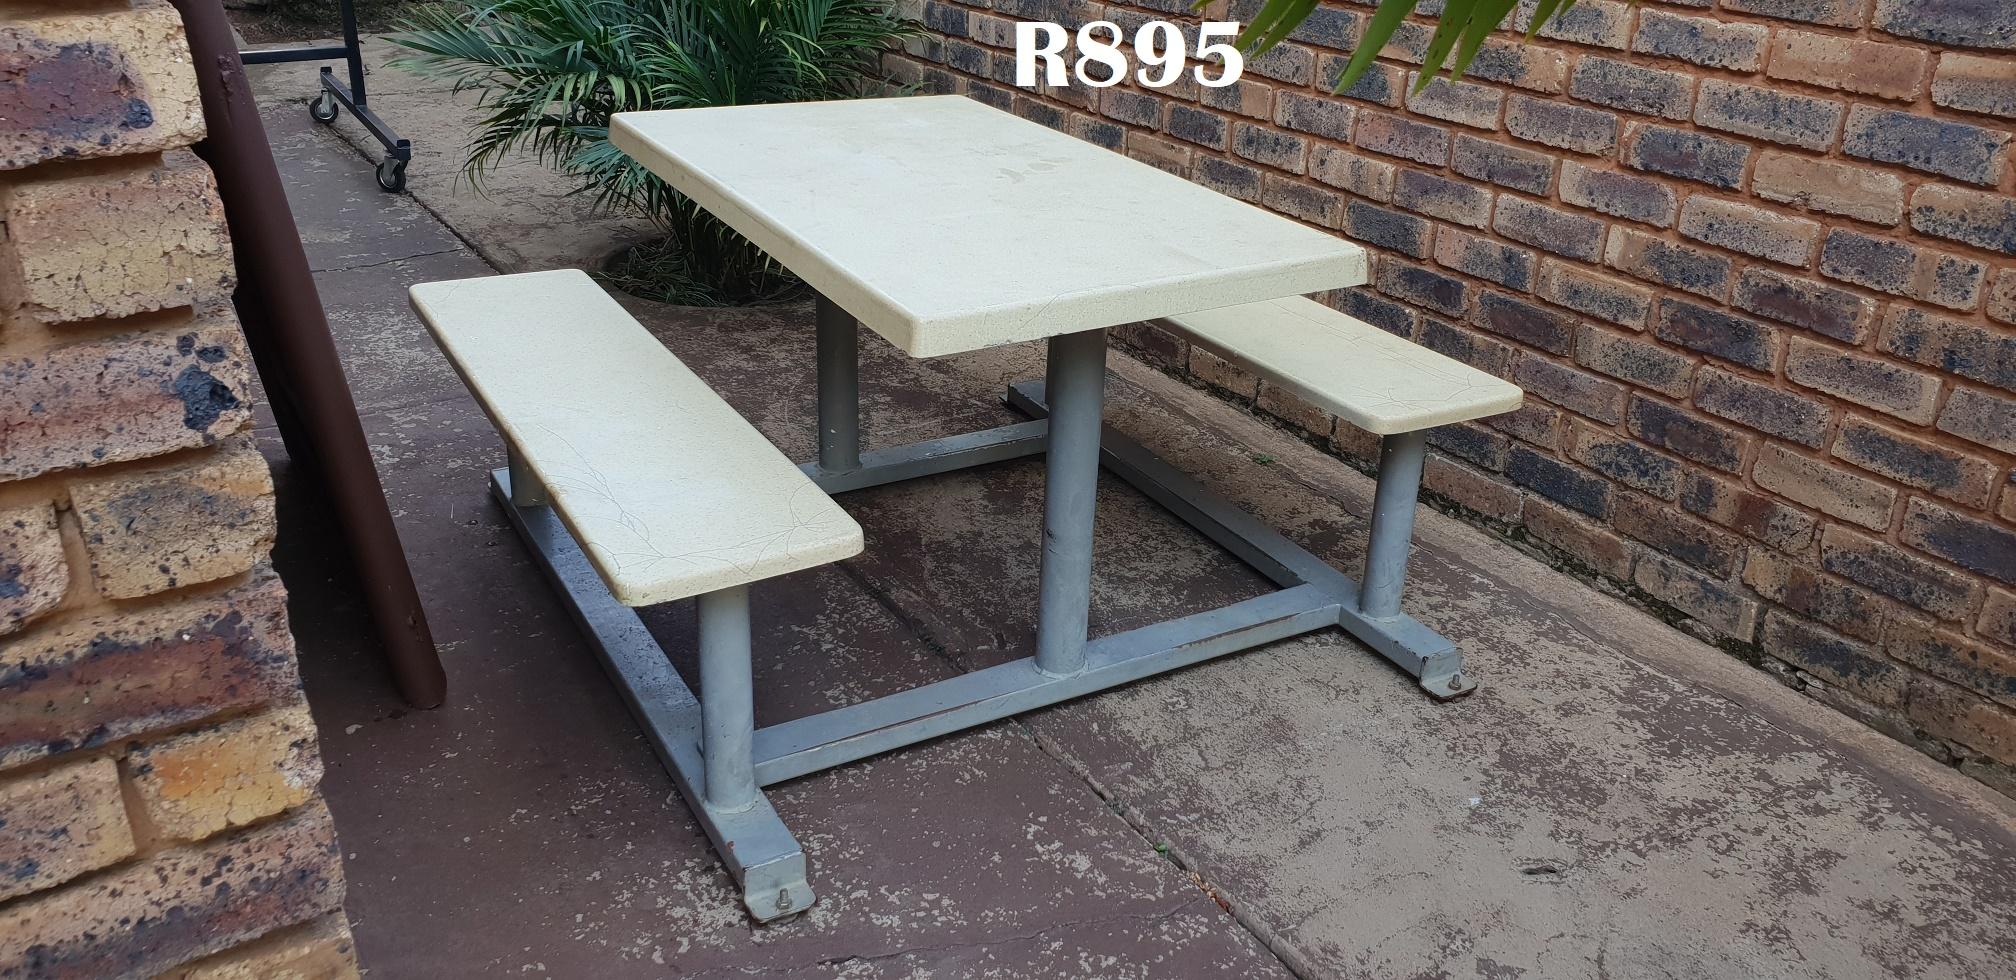 Outdoor Table Bench Combo (1200x1400x725)